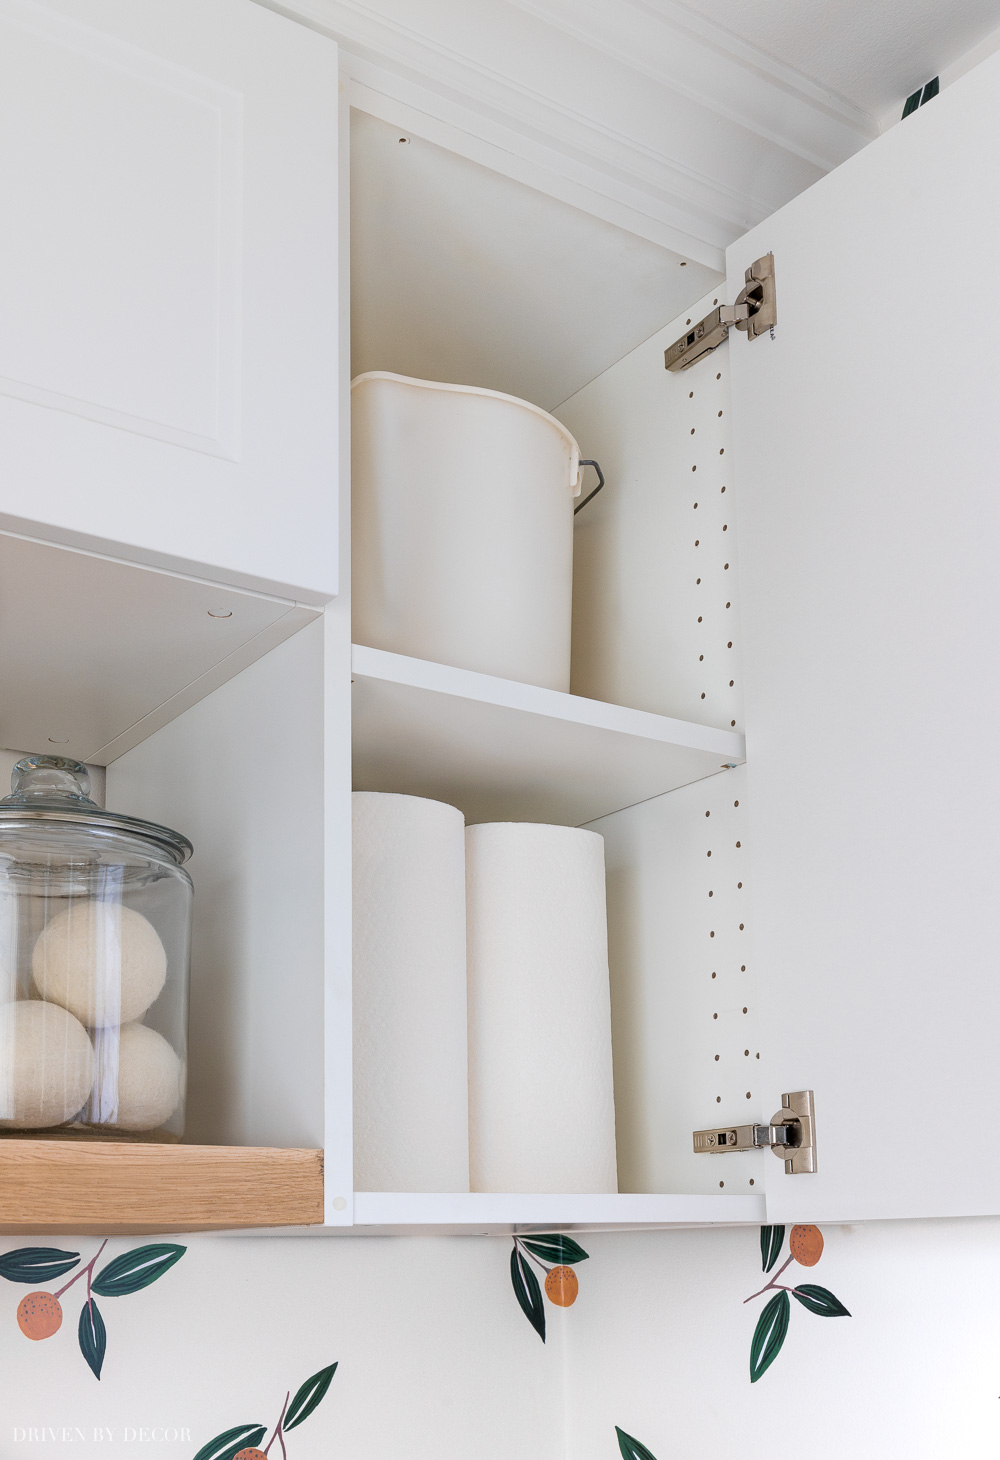 Inside our Ikea Axstad & Sektion laundry room cabinets